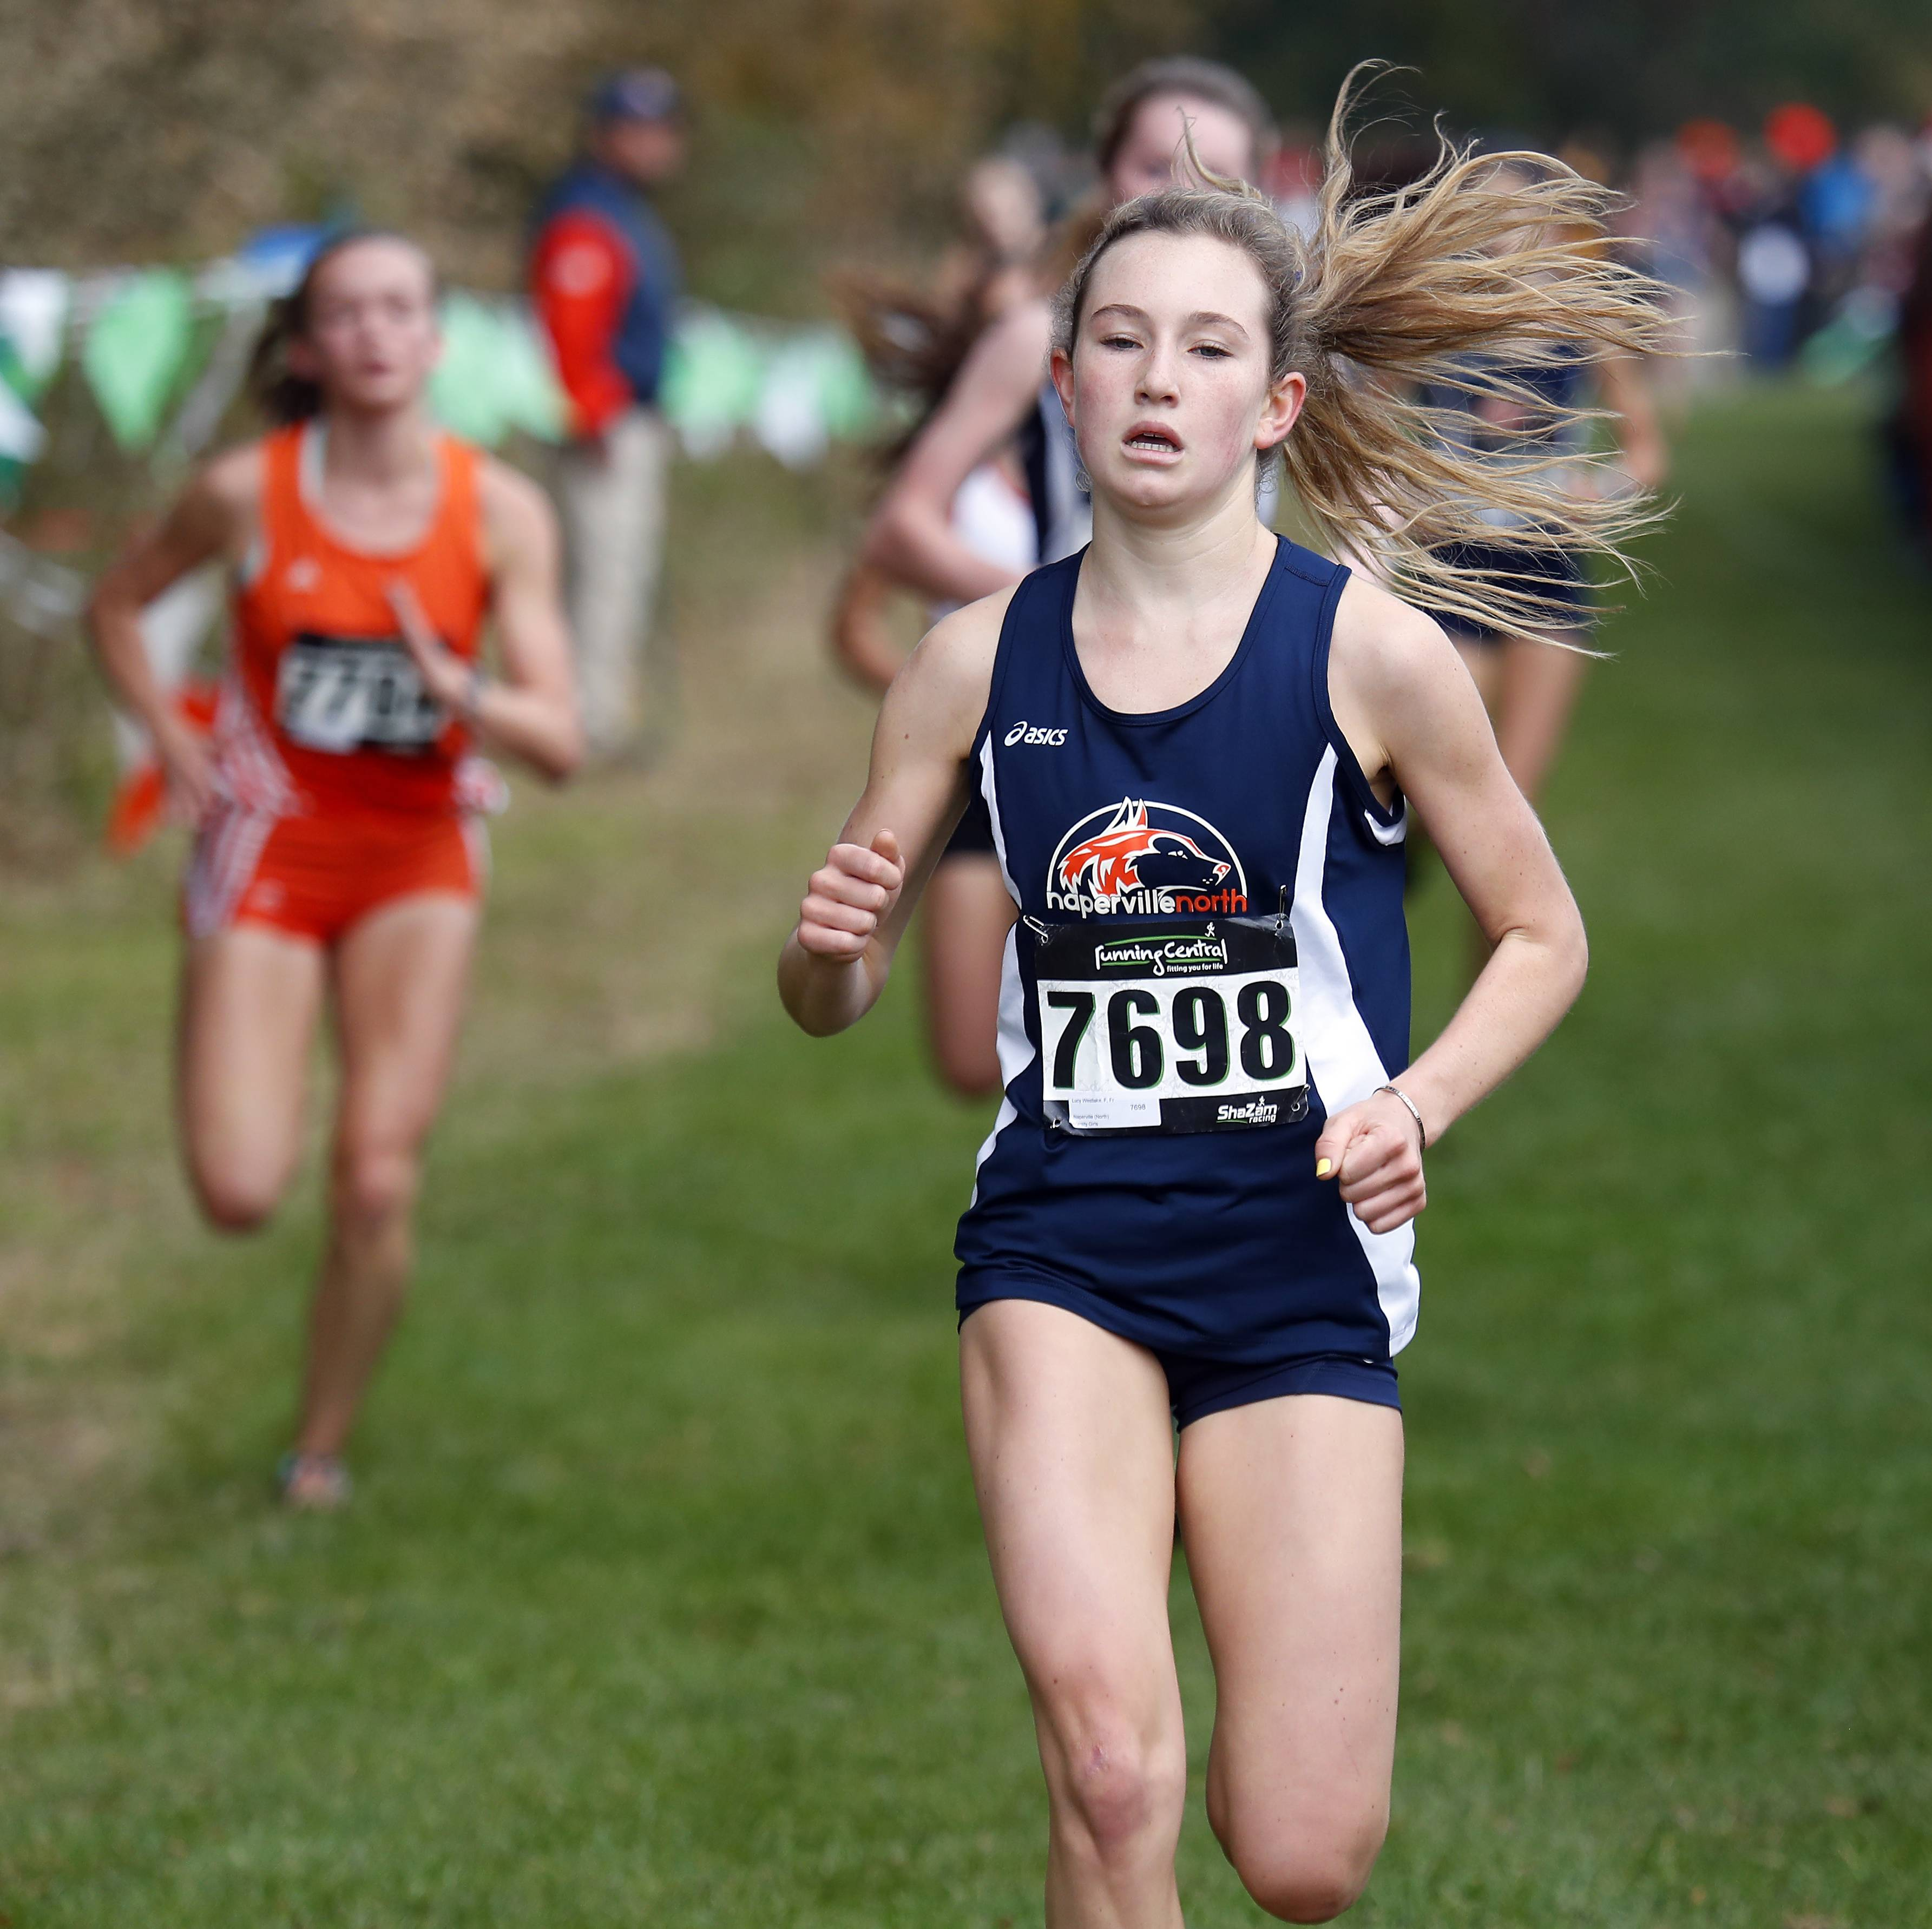 Lucy Westlake of Naperville North Saturday during the Waubonsie Valley cross country sectional in Aurora.